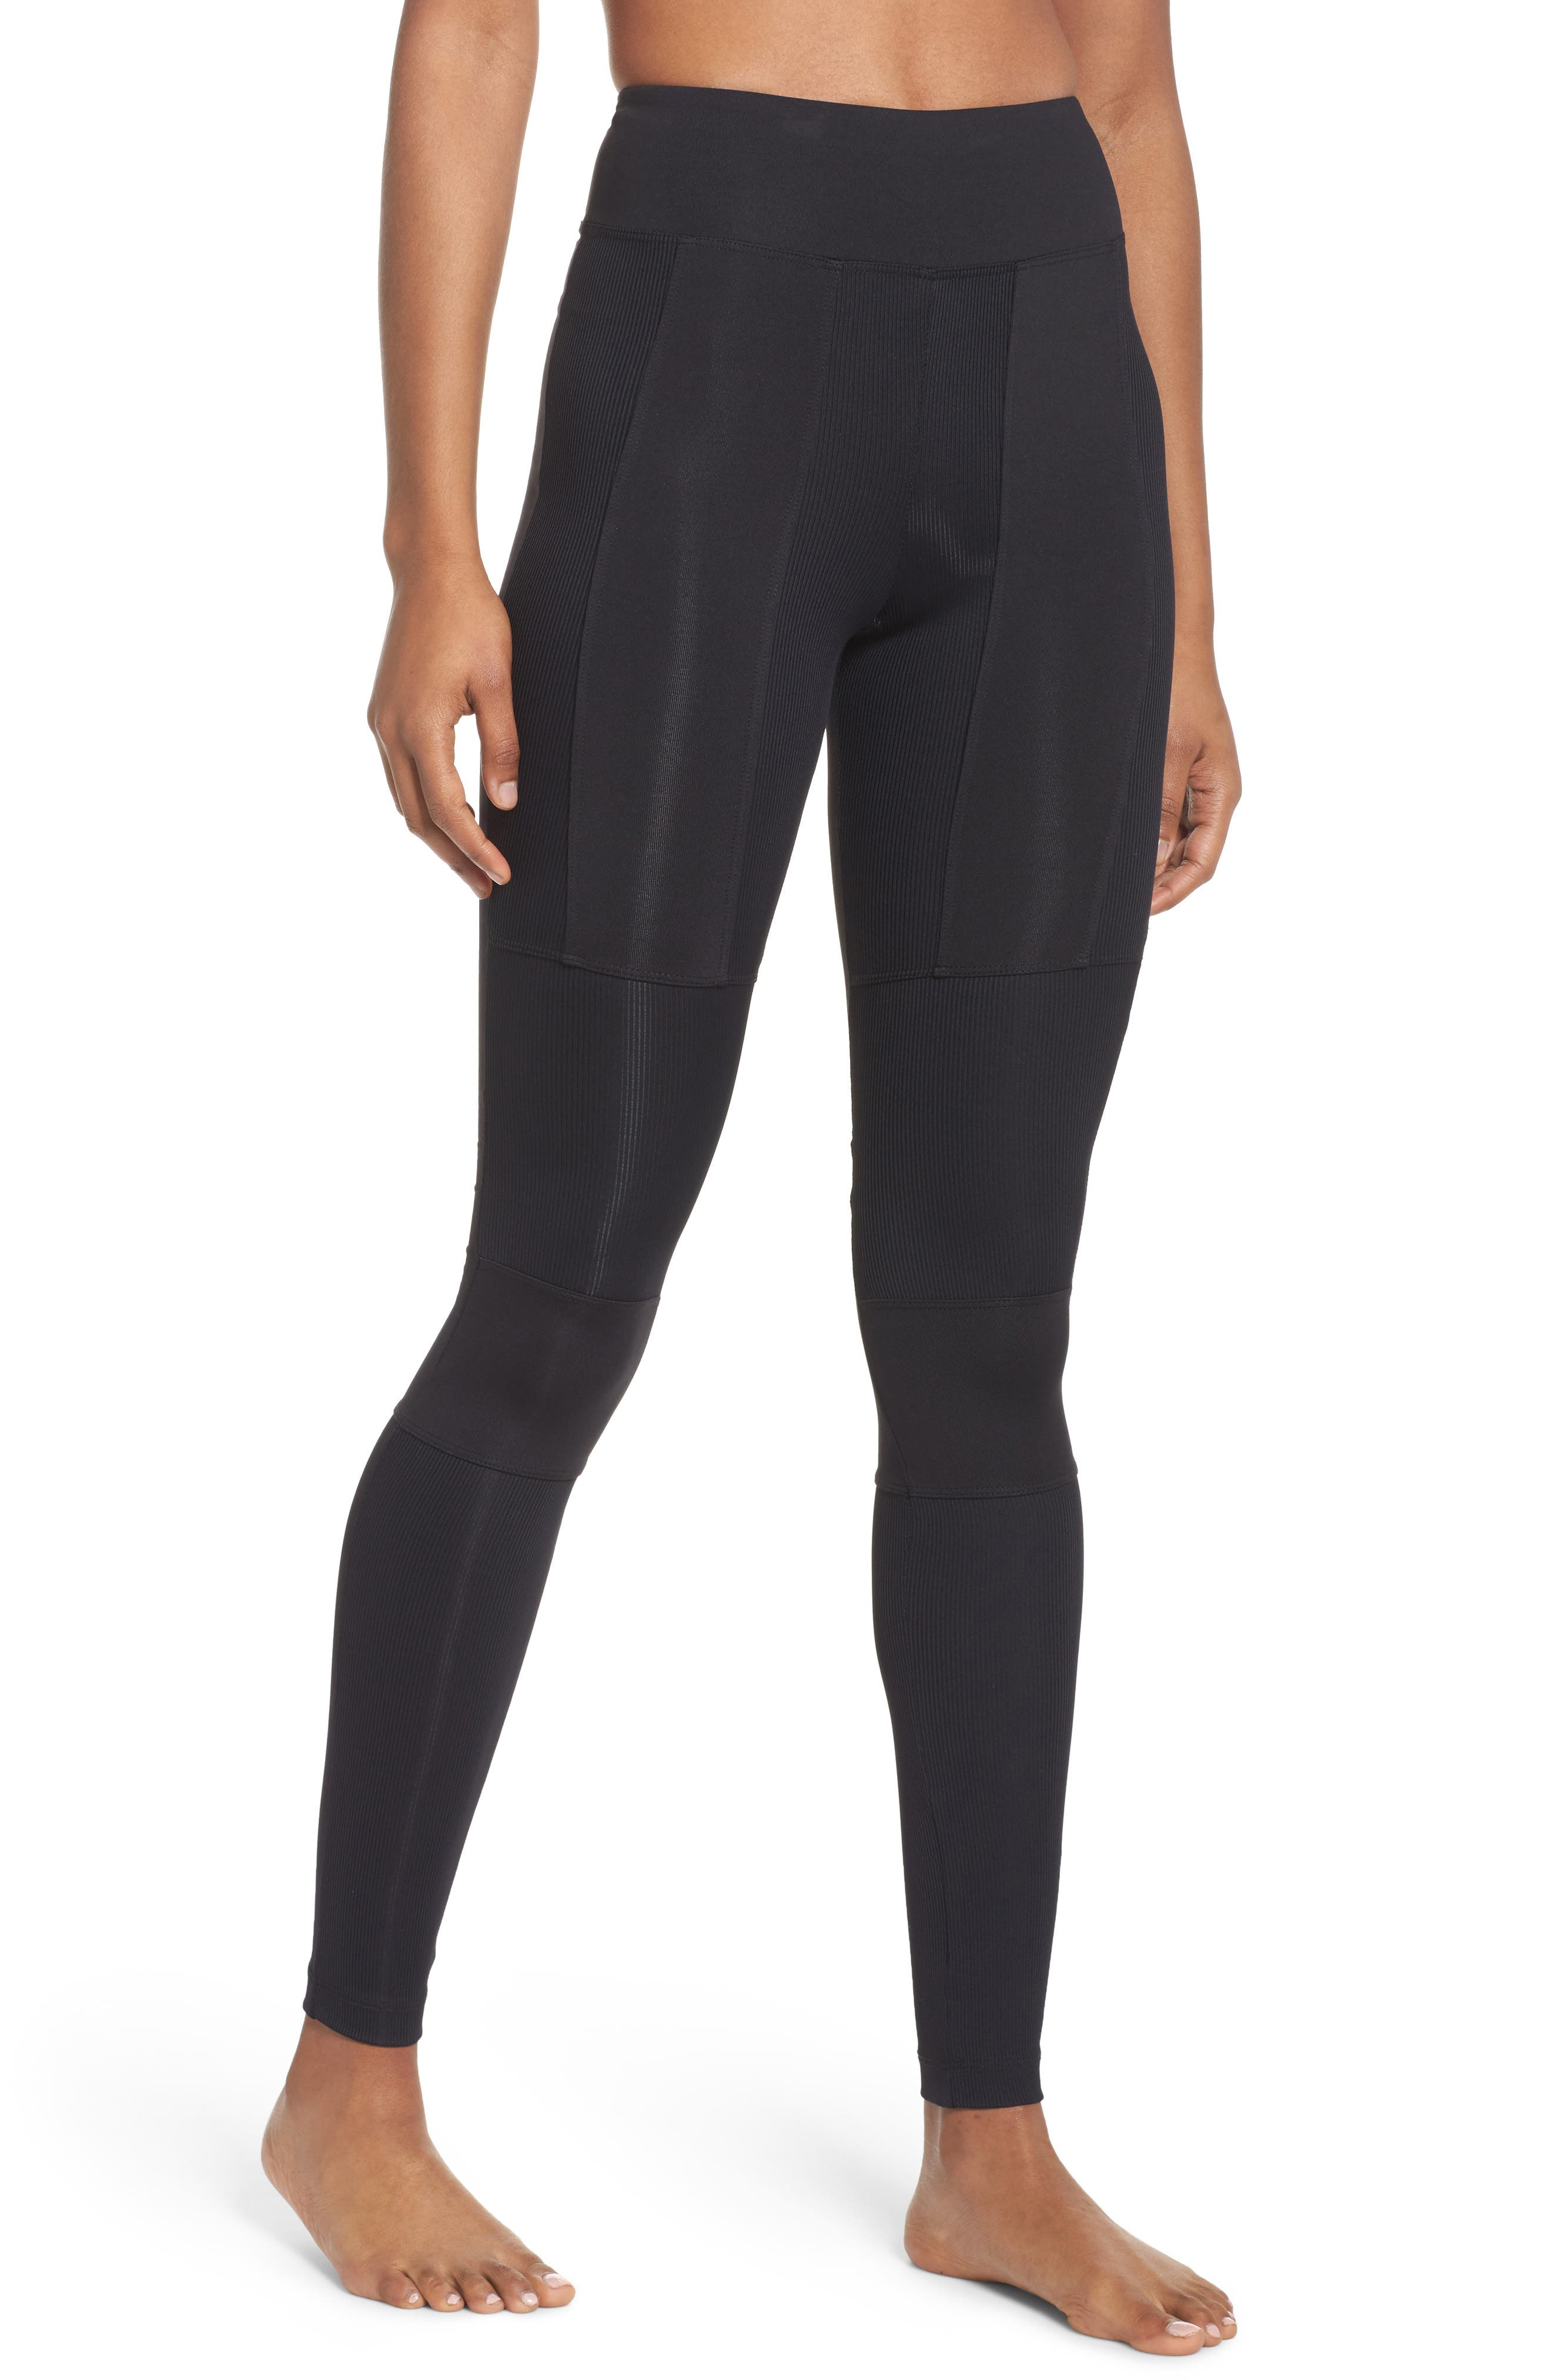 Rappel High Waist Leggings,                             Main thumbnail 1, color,                             001